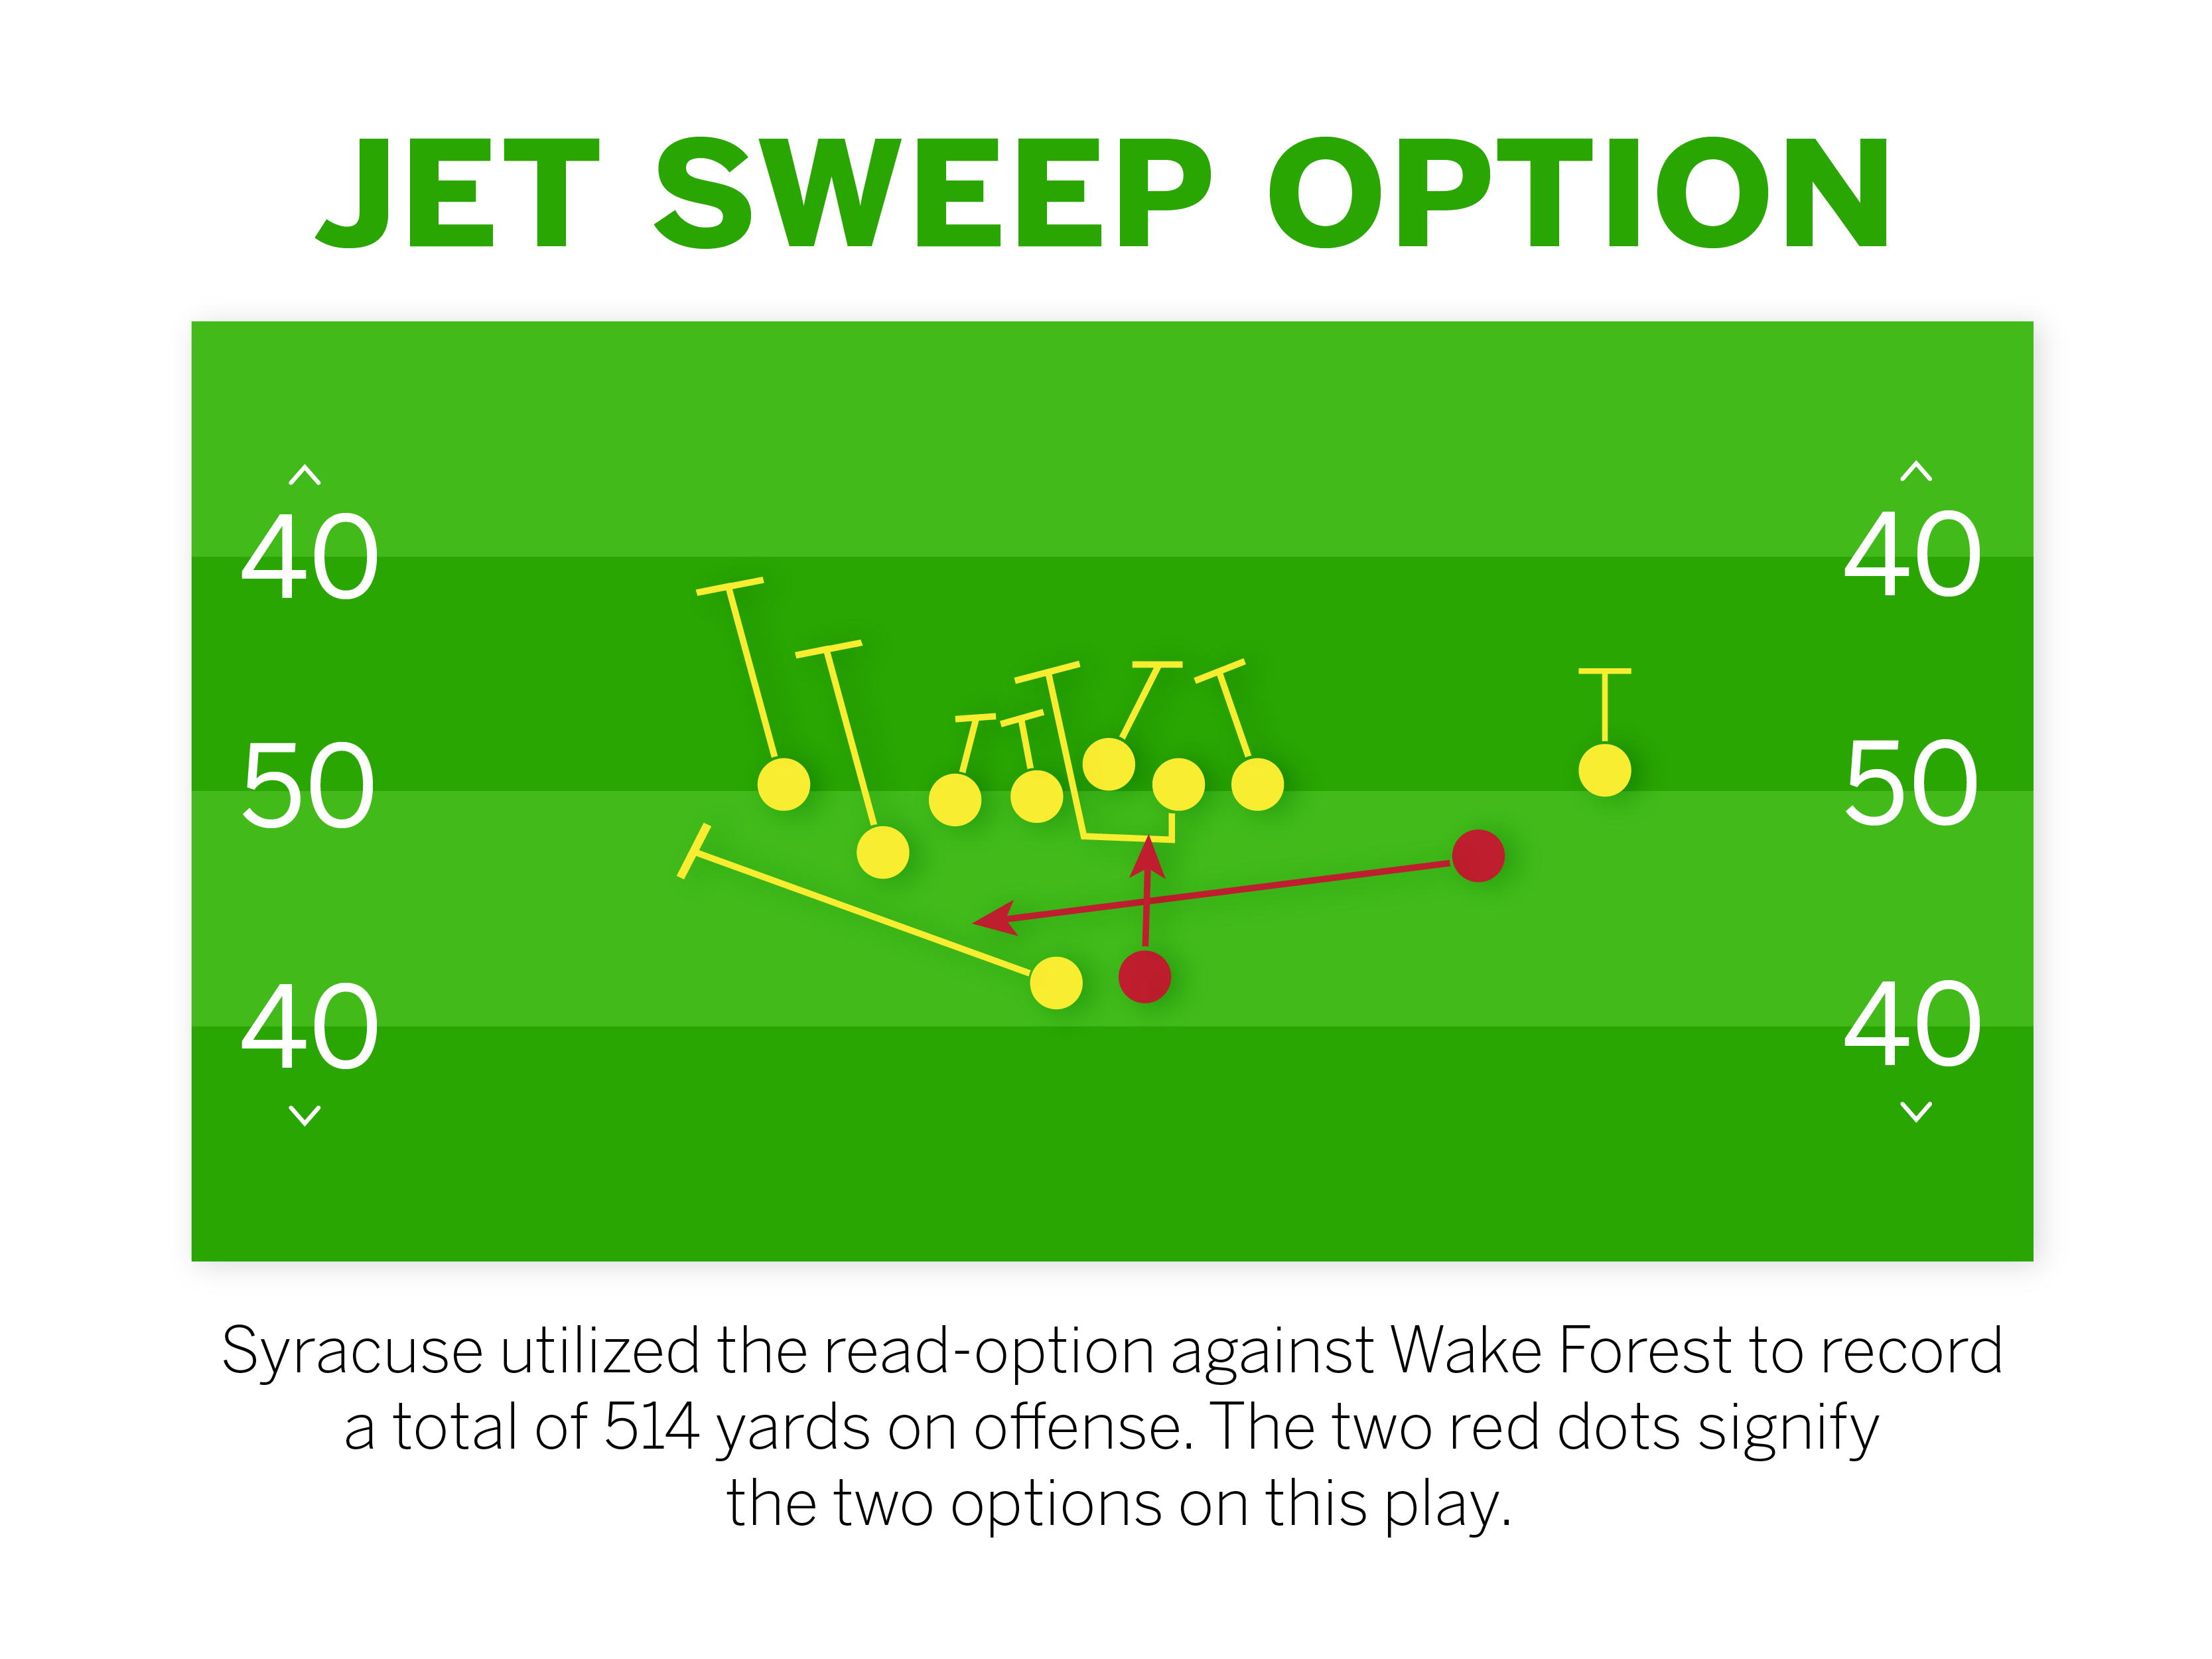 A look at Syracuse's jet-sweep option it ran against Wake Forest.